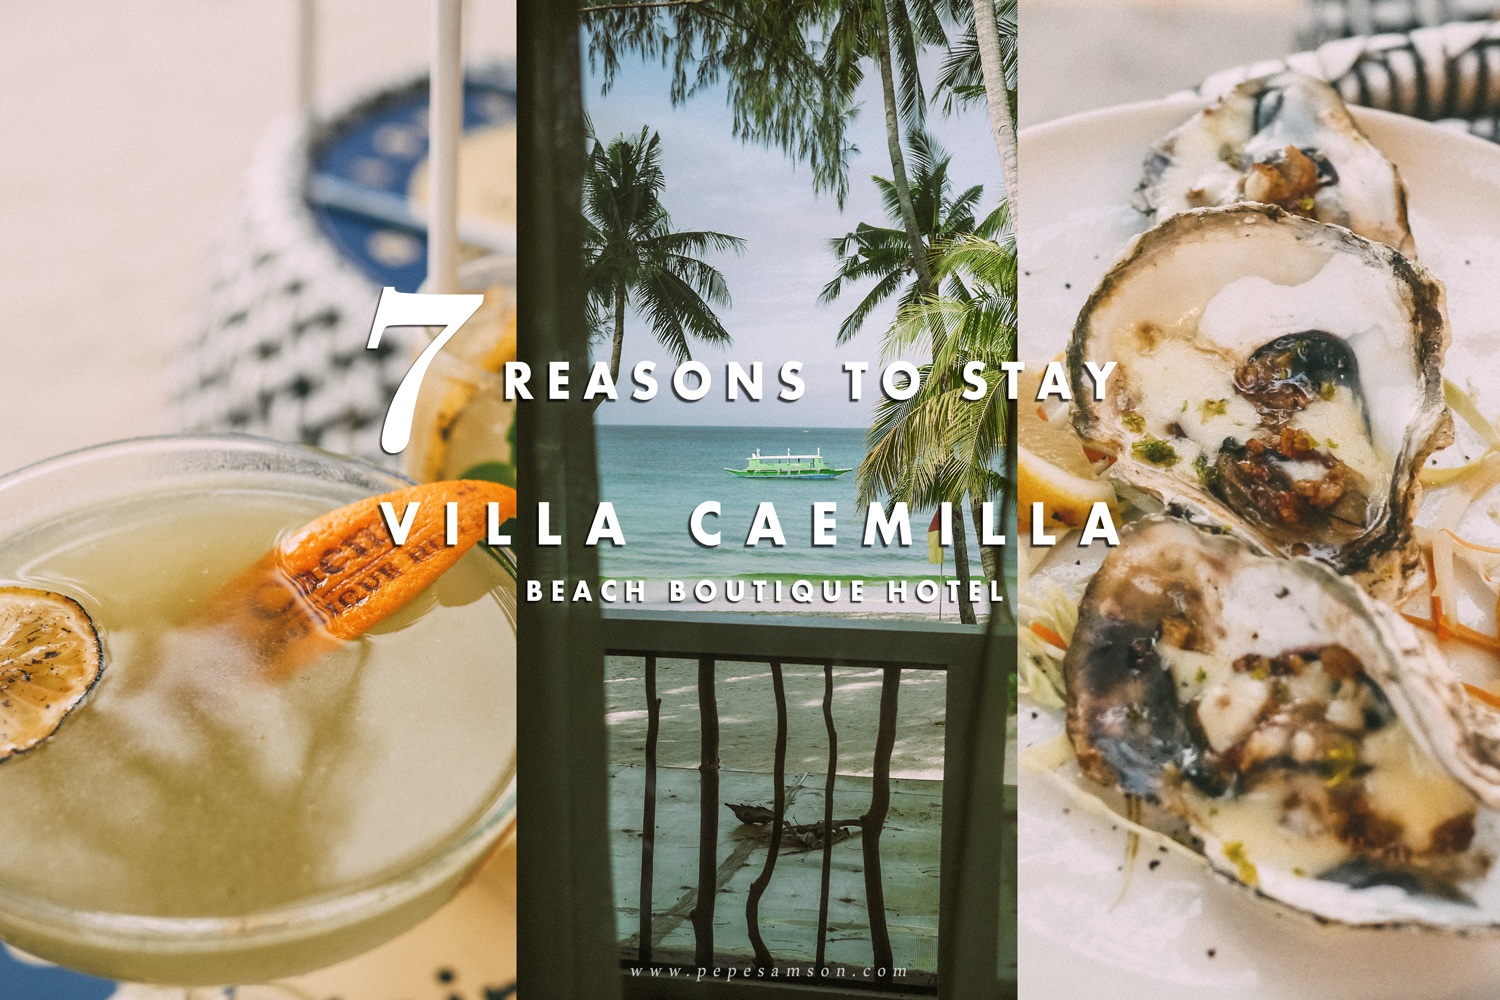 Boracay 2021: 7 Reasons to Stay at Villa Caemilla Beach Boutique Hotel